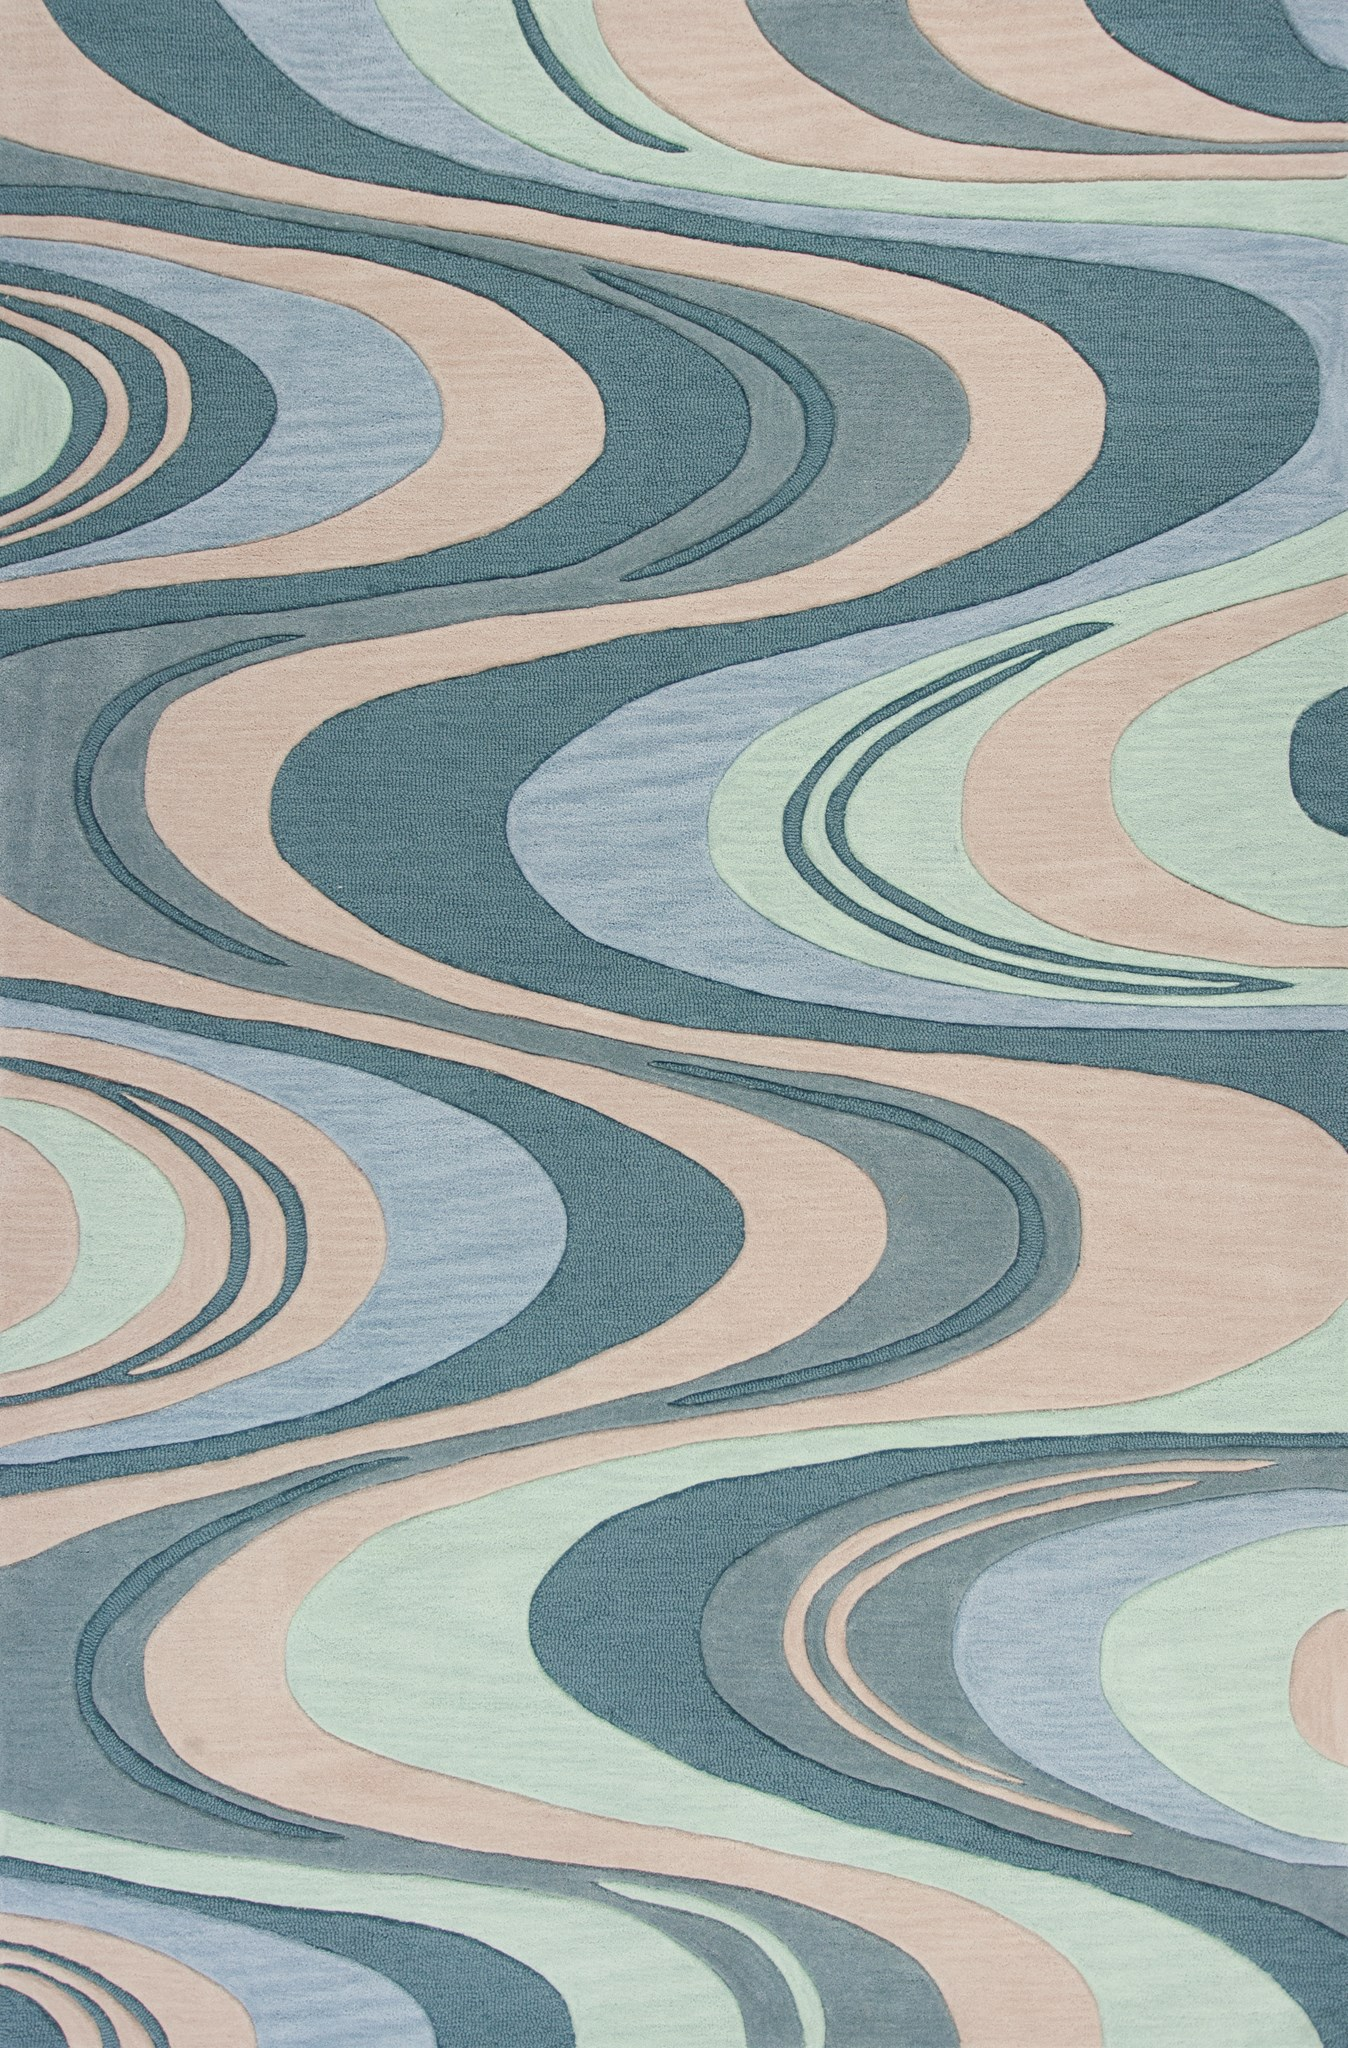 Milan 2125 Beige/Seafoam Waves